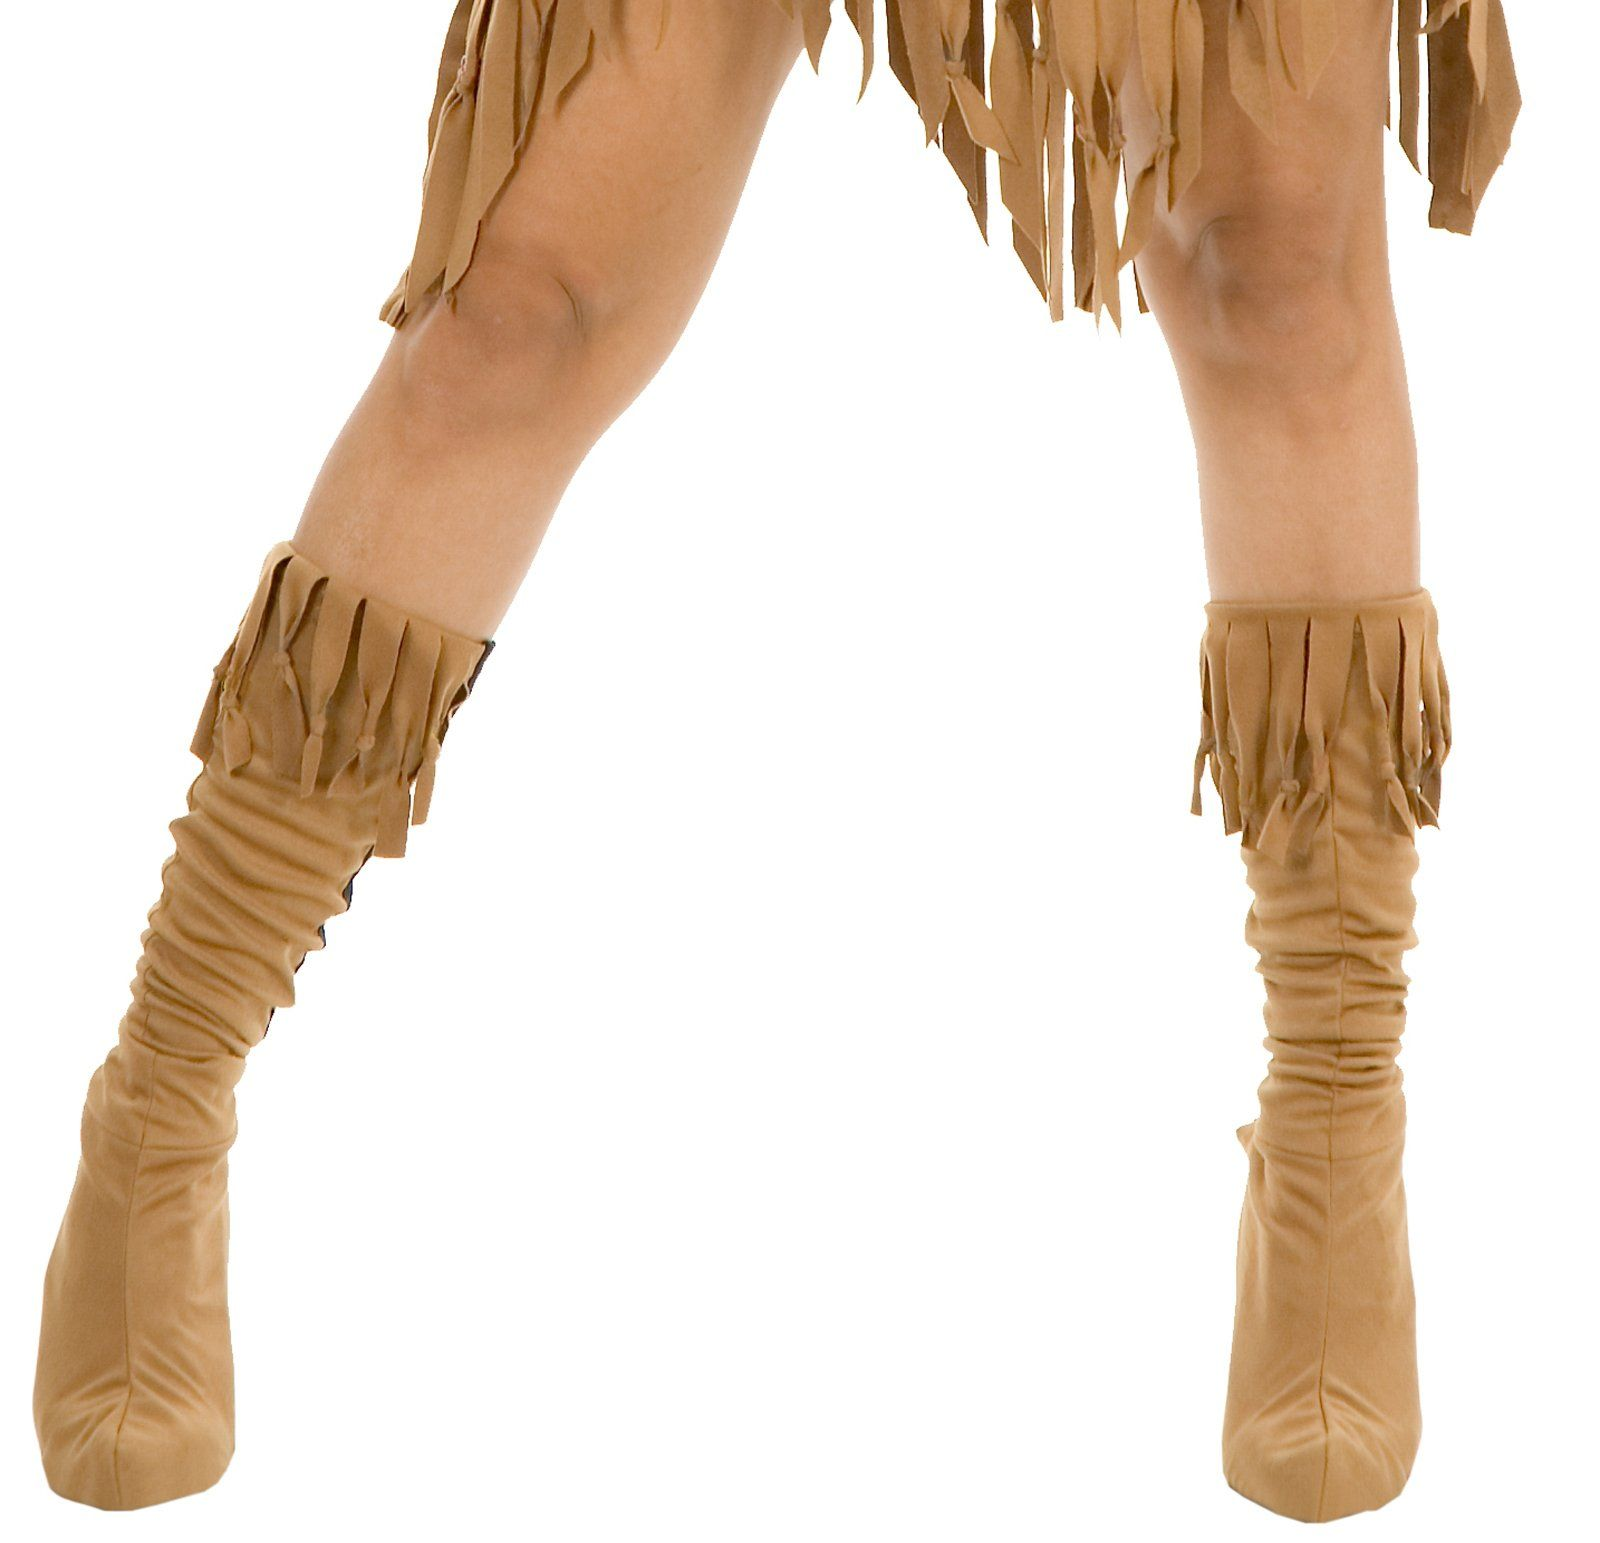 ProductDetail: Accessories Makeup: Shoes Boots Name: Indian Maiden Suede Adult Boot Covers ID: 61089